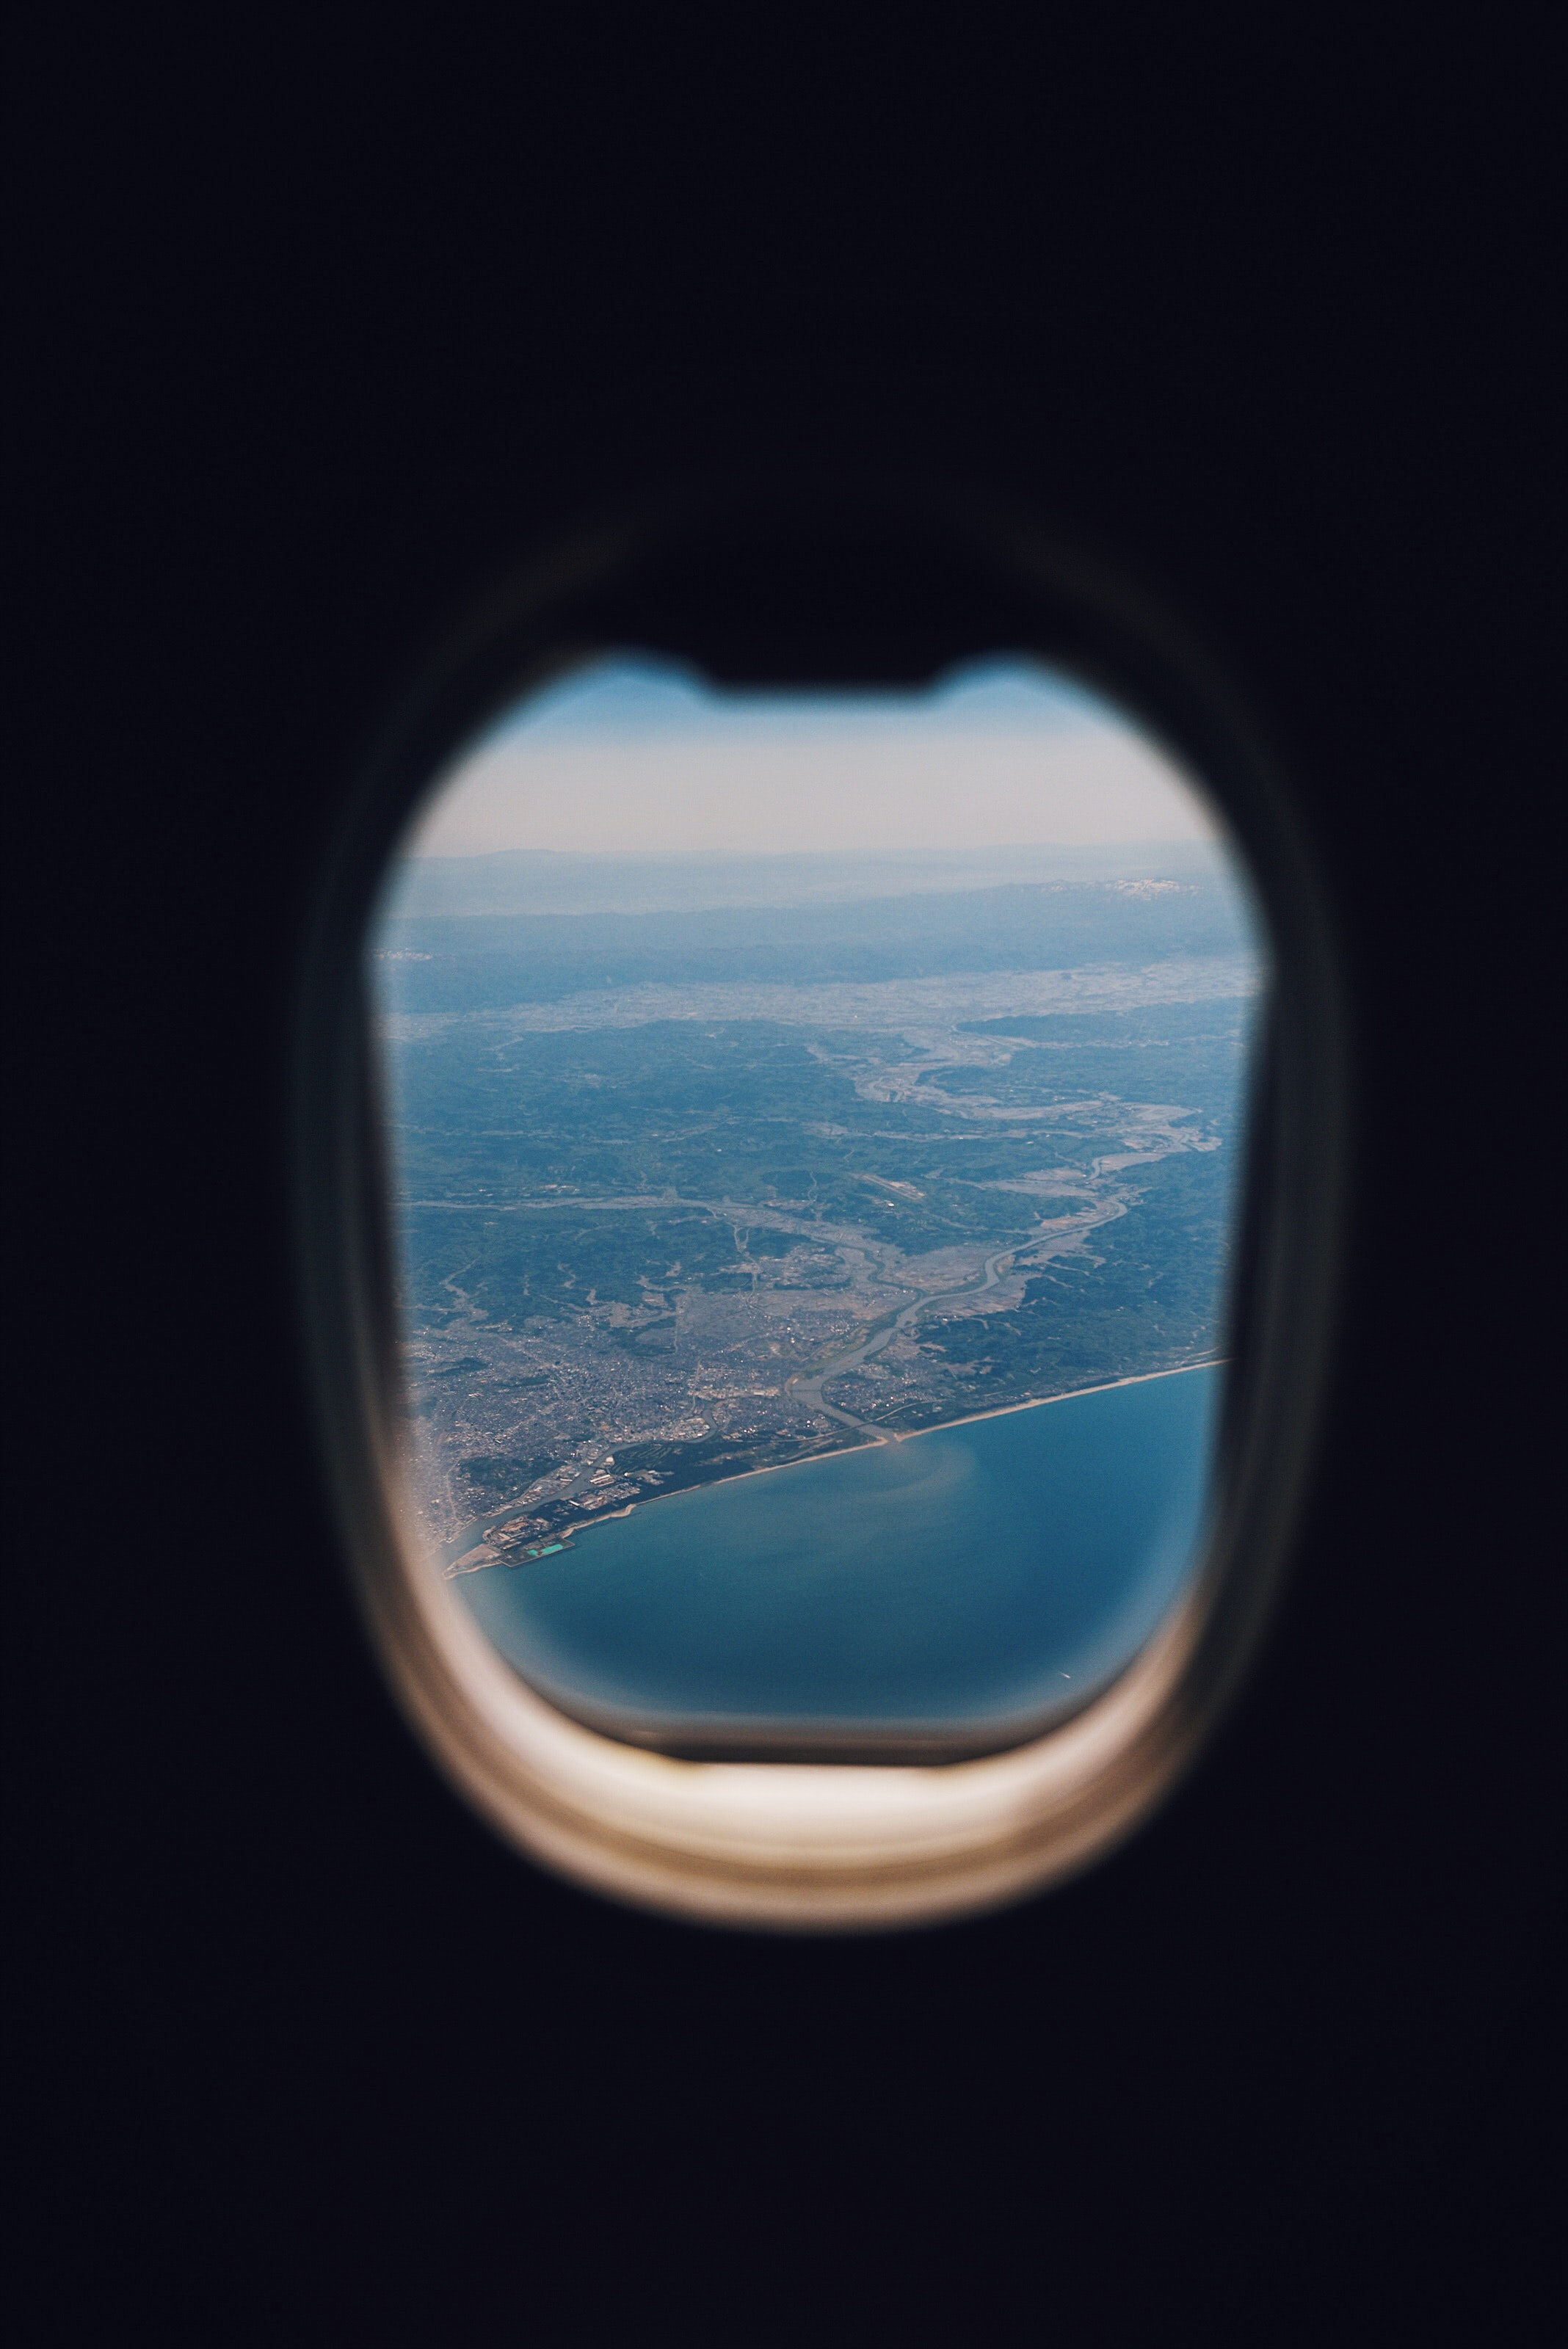 Air plane window photo by Suhyeon Choi (@choisyeon) on